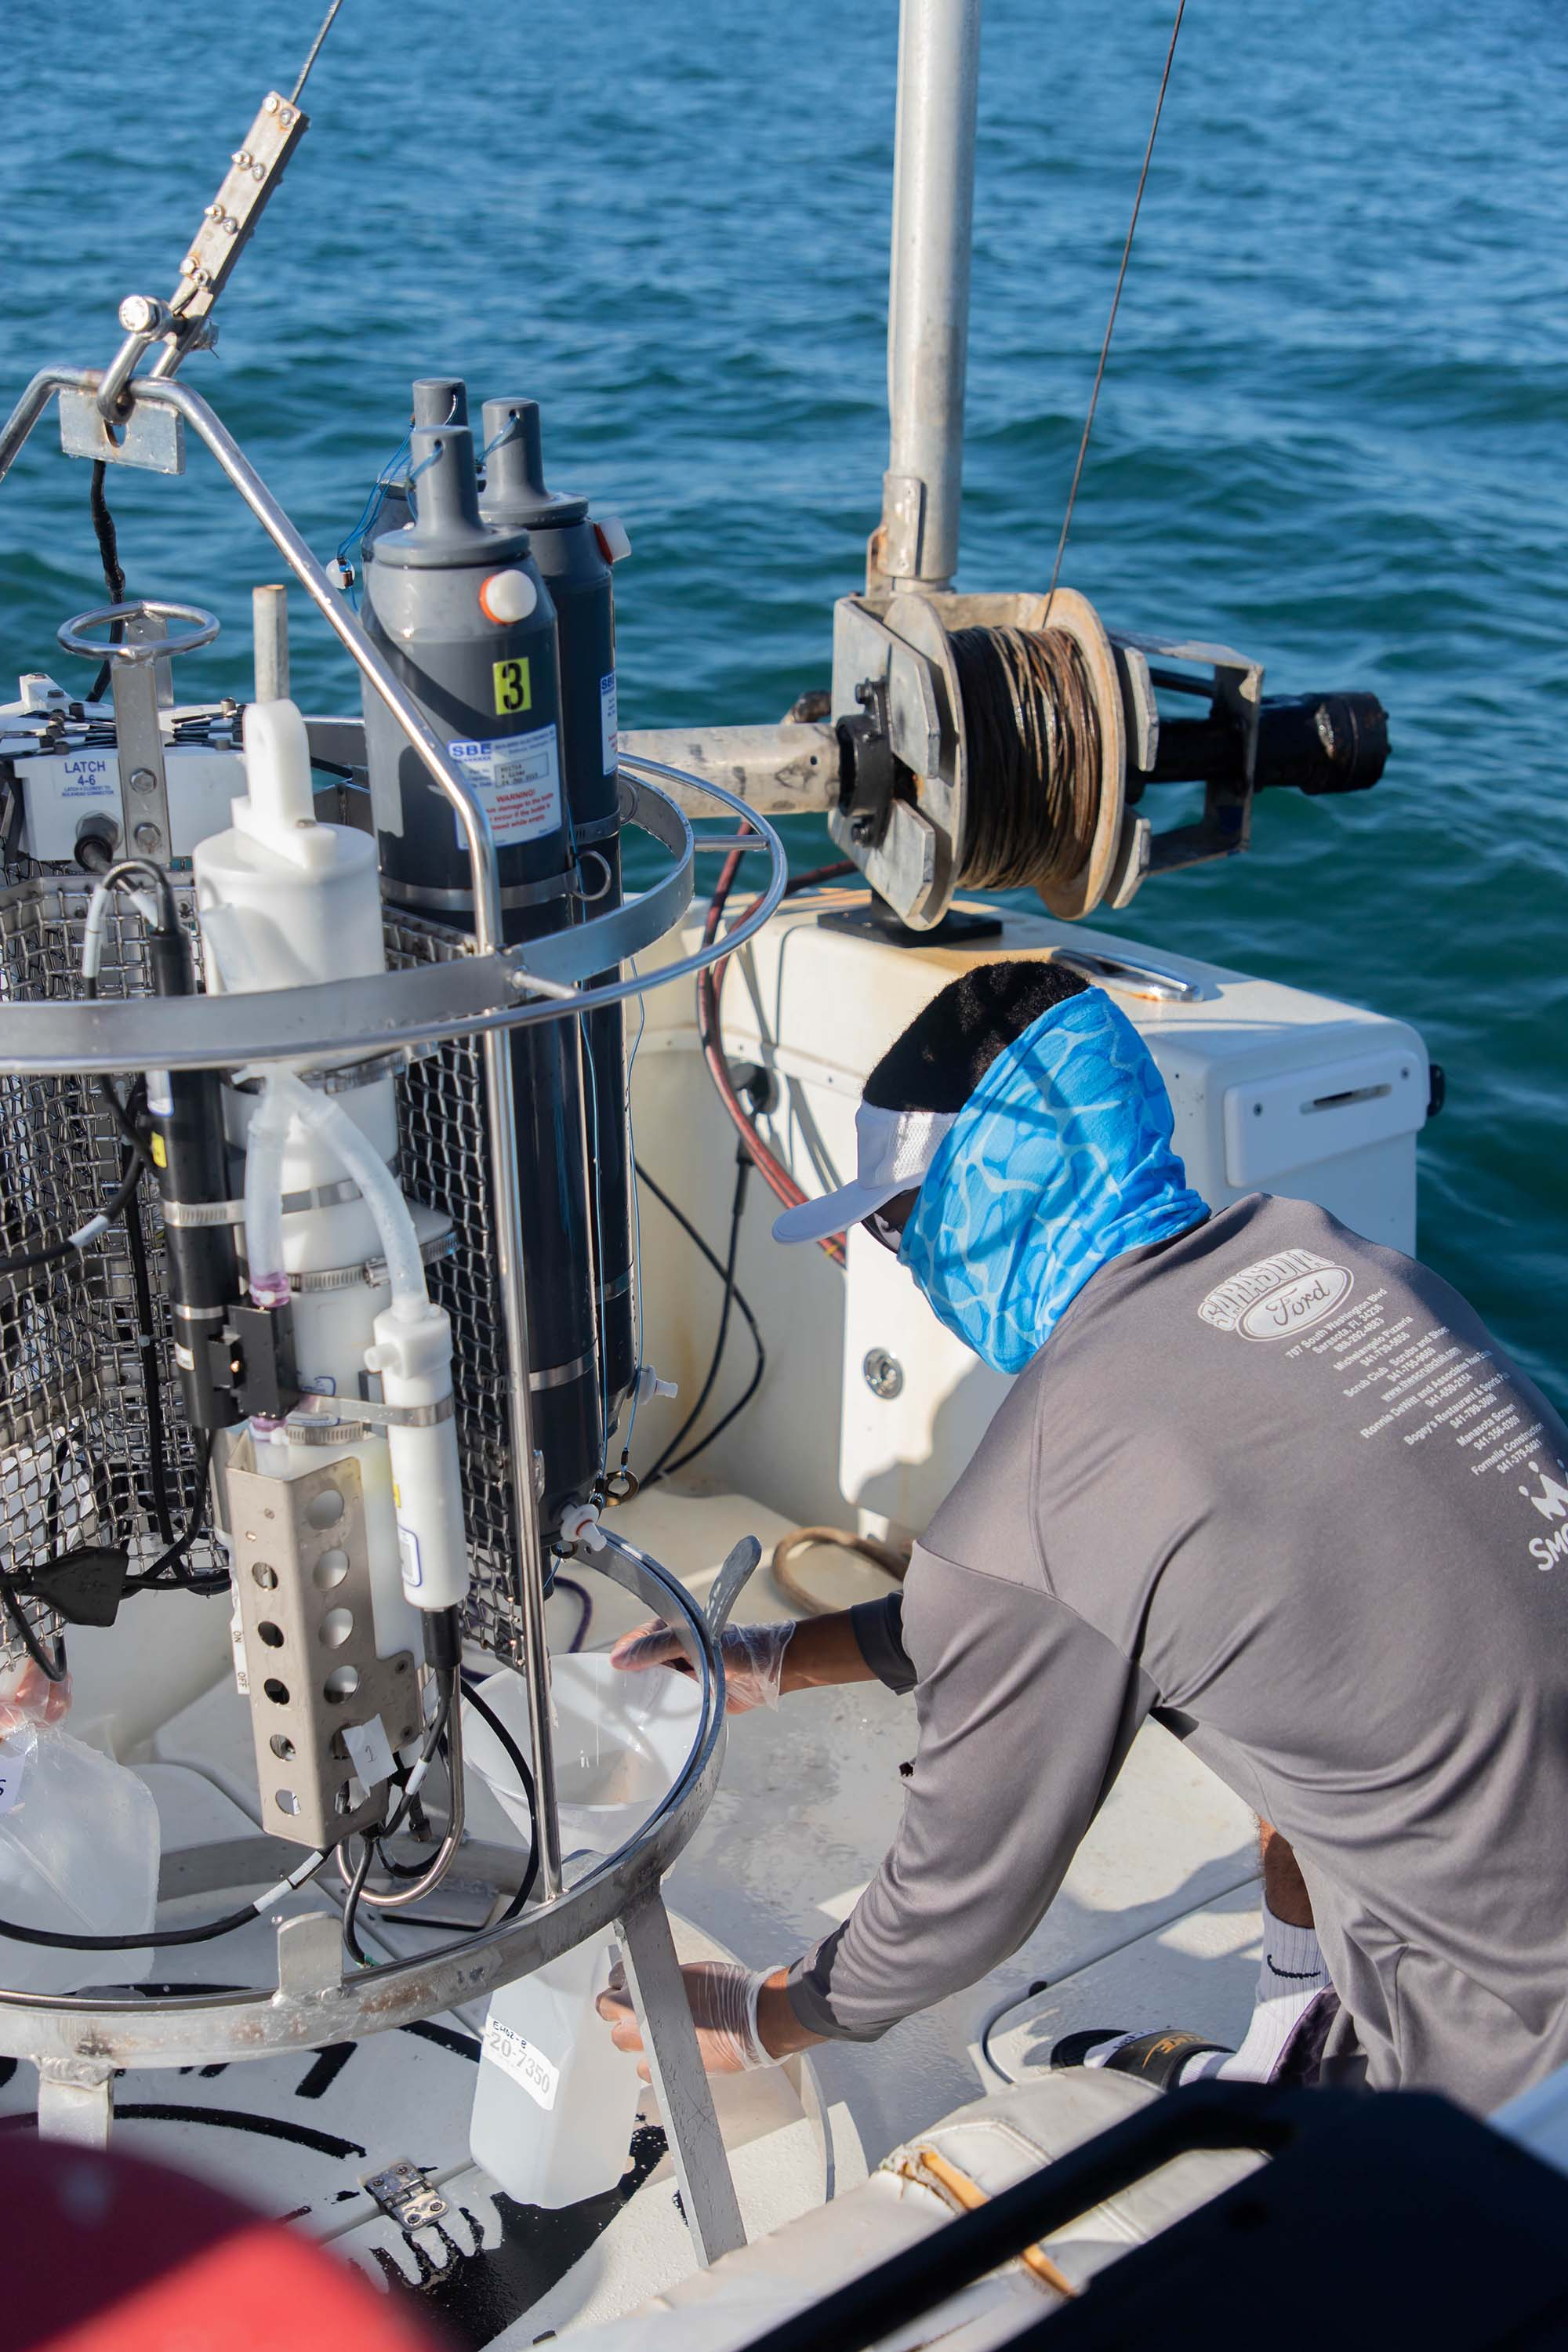 """Mote staff collected water samples and deployed a CTD (conductivity, temperature, depth) device at 14 stations between Sarasota and Tampa Bay (the """"Tampa Bay transect"""") to analyze the chemical, biological and physical properties at each location. The research goal is to better understand the parameters surrounding a red tide bloom, including initiation and termination. It is part of a five-year NOAA-funded study (of a total 28 stations in northern and southern transects), with surveys being performed monthly. Photos taken on Monday, August 10, 2020. Pictured: Jean Ozit, MarSci-LACE Intern. Photo Credit - Carlos Matthews/Mote Marine Laboratory"""